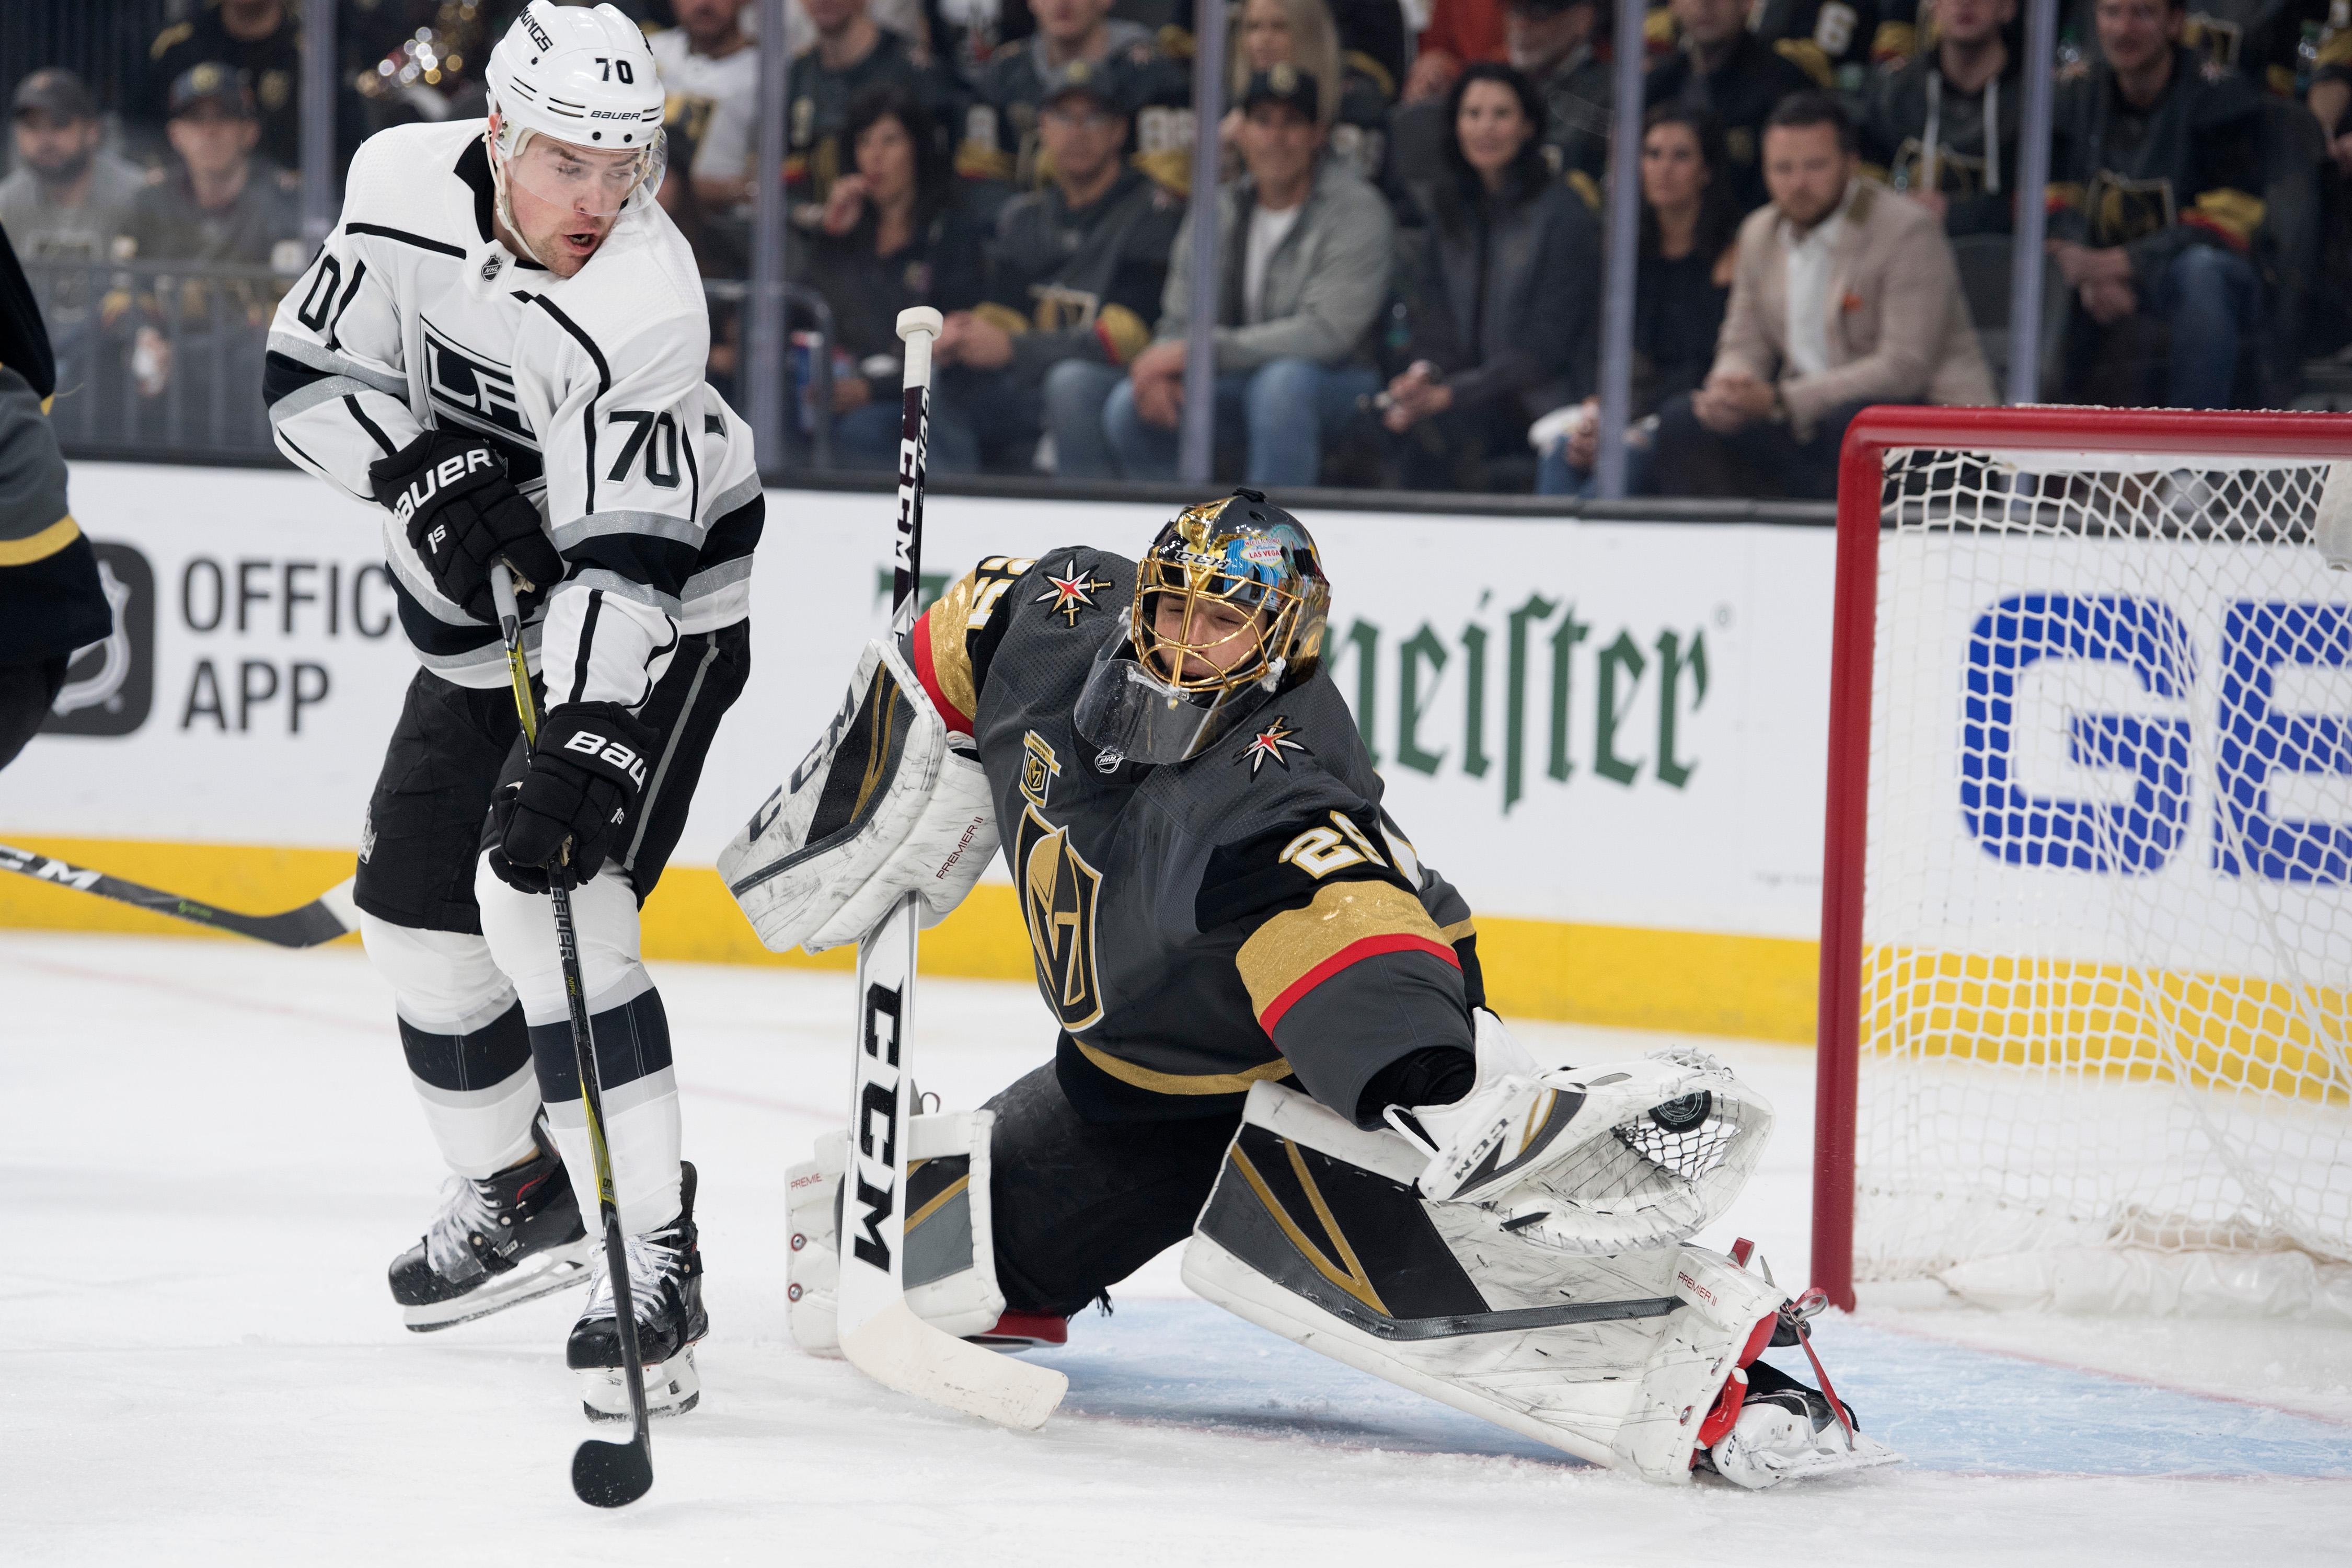 Vegas Golden Knights goaltender Marc-Andre Fleury (29) makes a glove save while Los Angeles Kings left wing Tanner Pearson (70) waits for a rebound during the first period of Game 1 of their NHL hockey first-round playoff series Wednesday, April 11, 2018 at T-Mobile Arena. The Knights won 1-0. CREDIT: Sam Morris/Las Vegas News Bureau